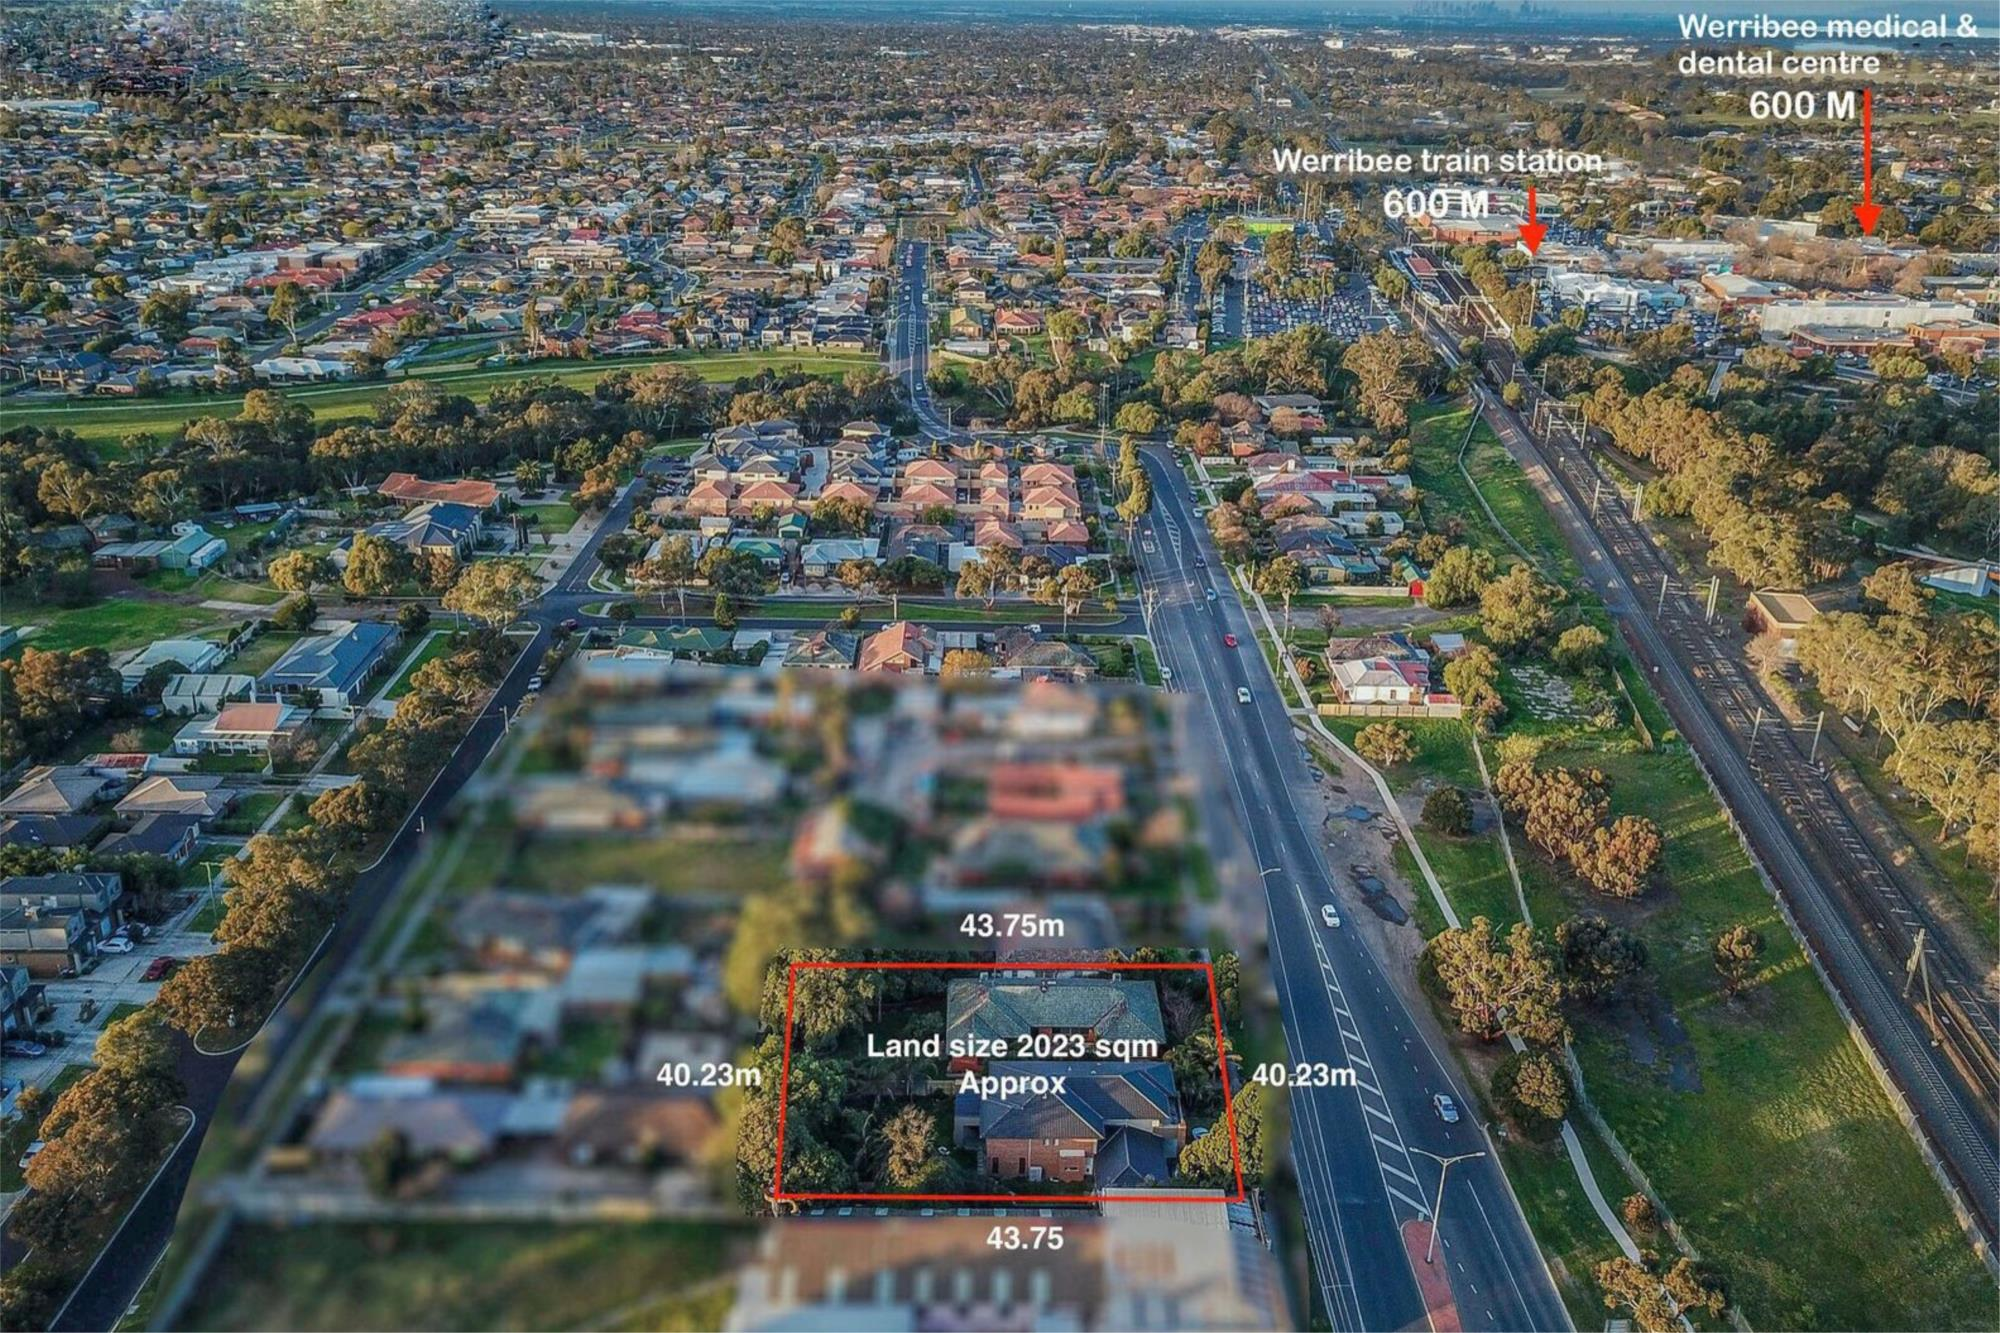 Mixed Use Development Opportunity In Werribee Activity Centre